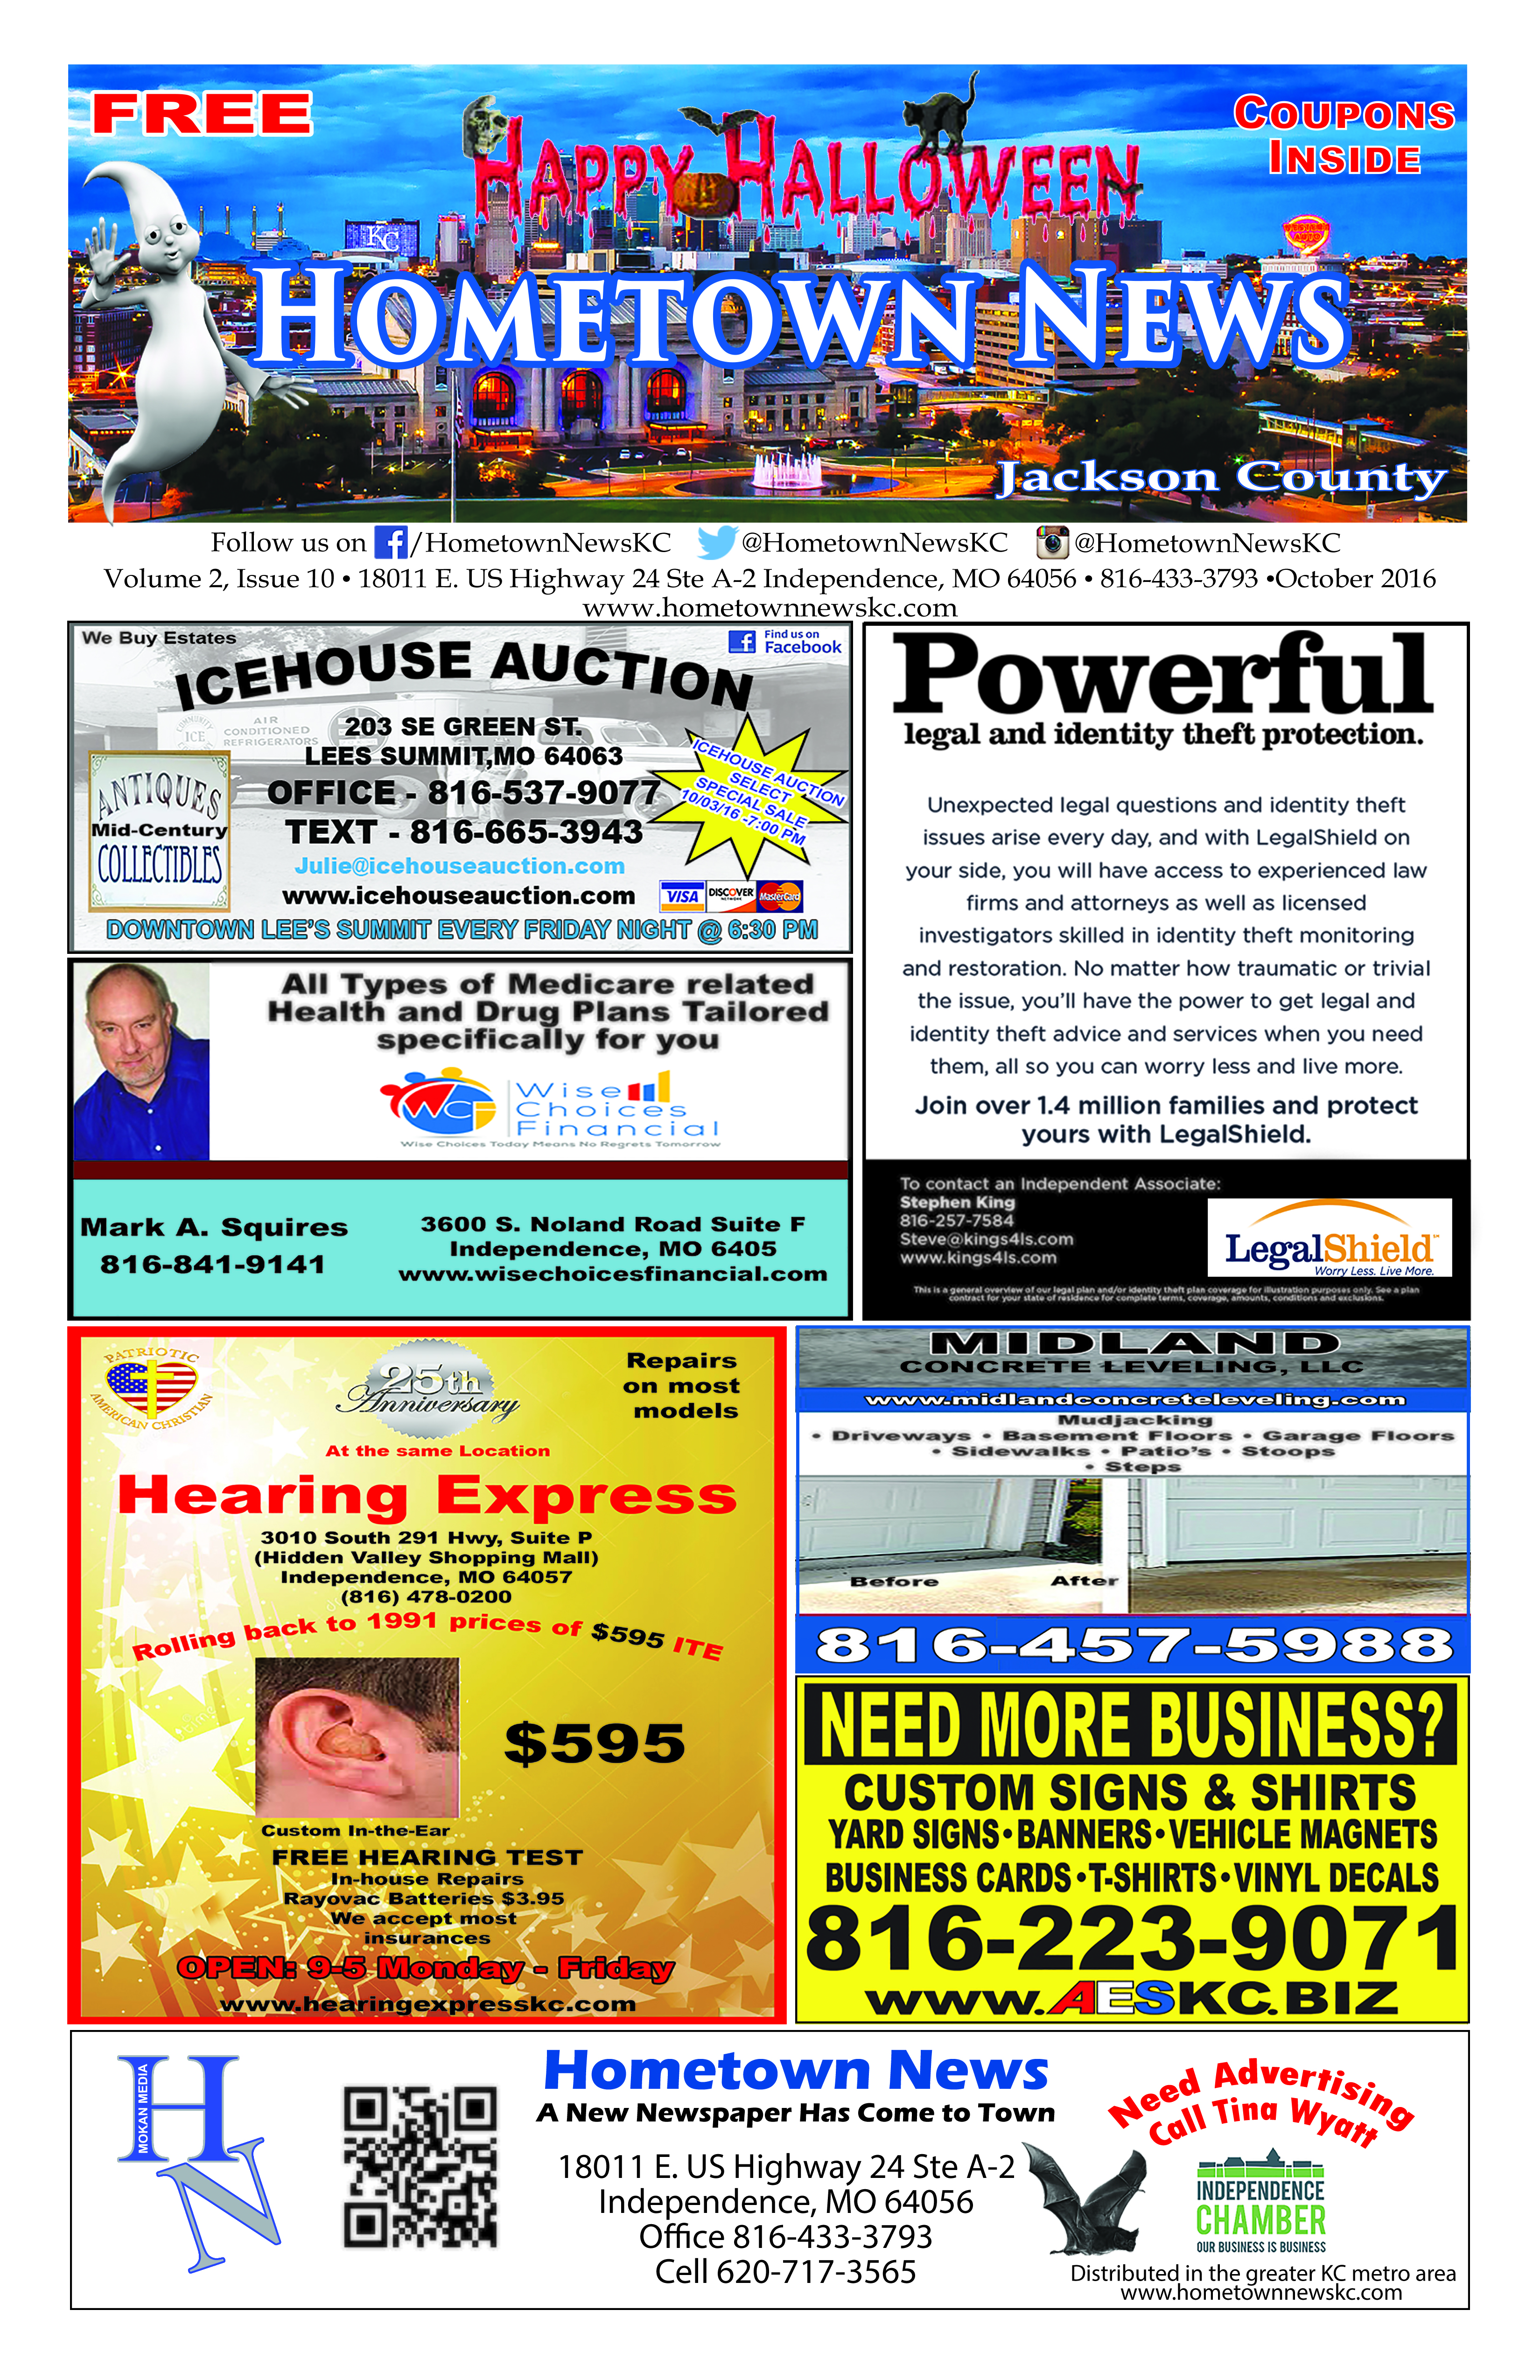 HTN15 - 1 - Front Page